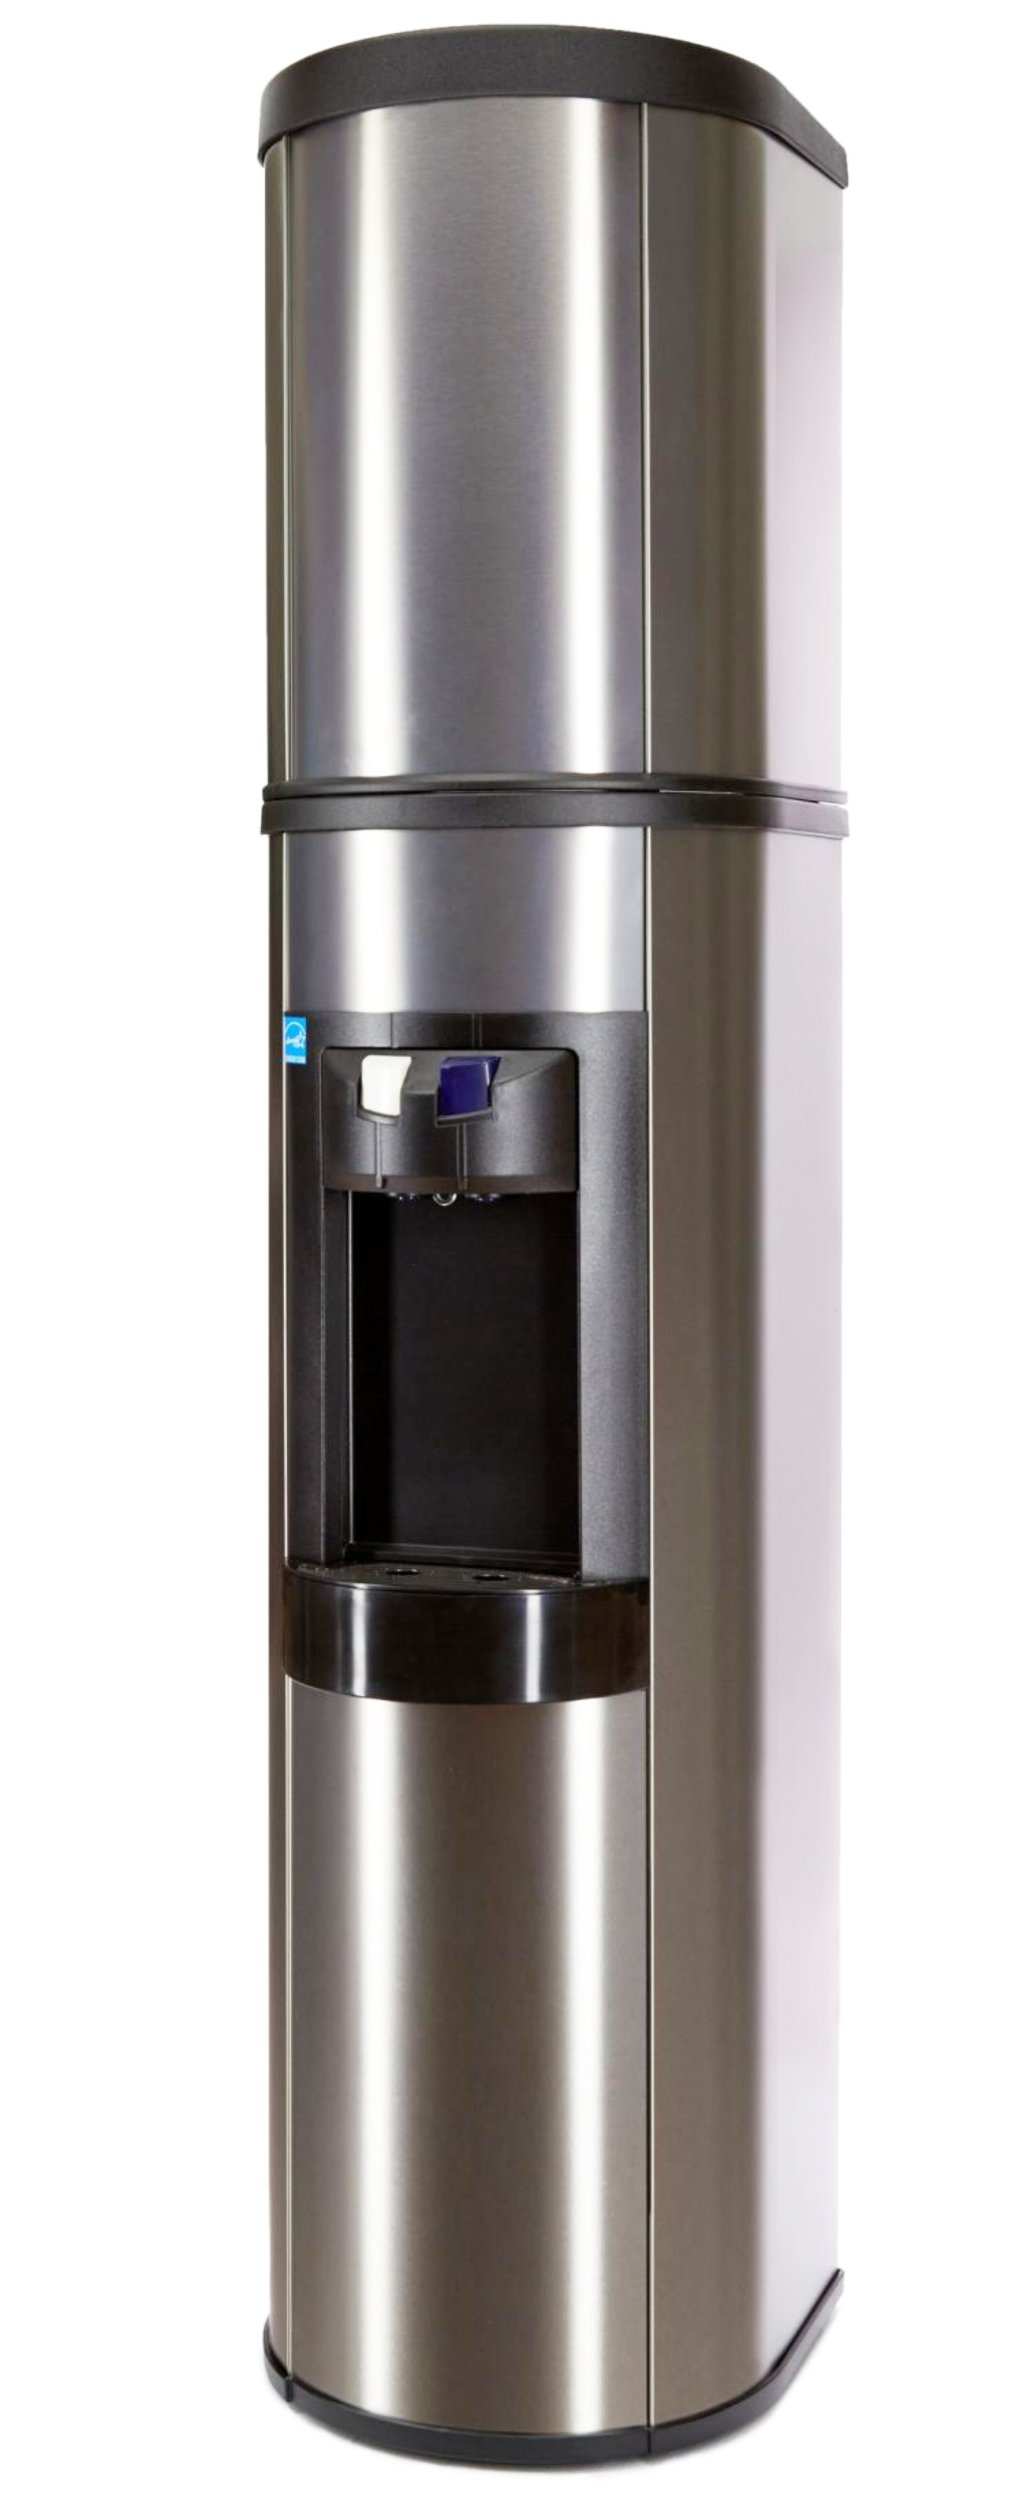 Absolu Stainless Steel Water Cooler, Matching Stainless Cover Hot & Cold - Made in North America by Aquaverve Water Coolers